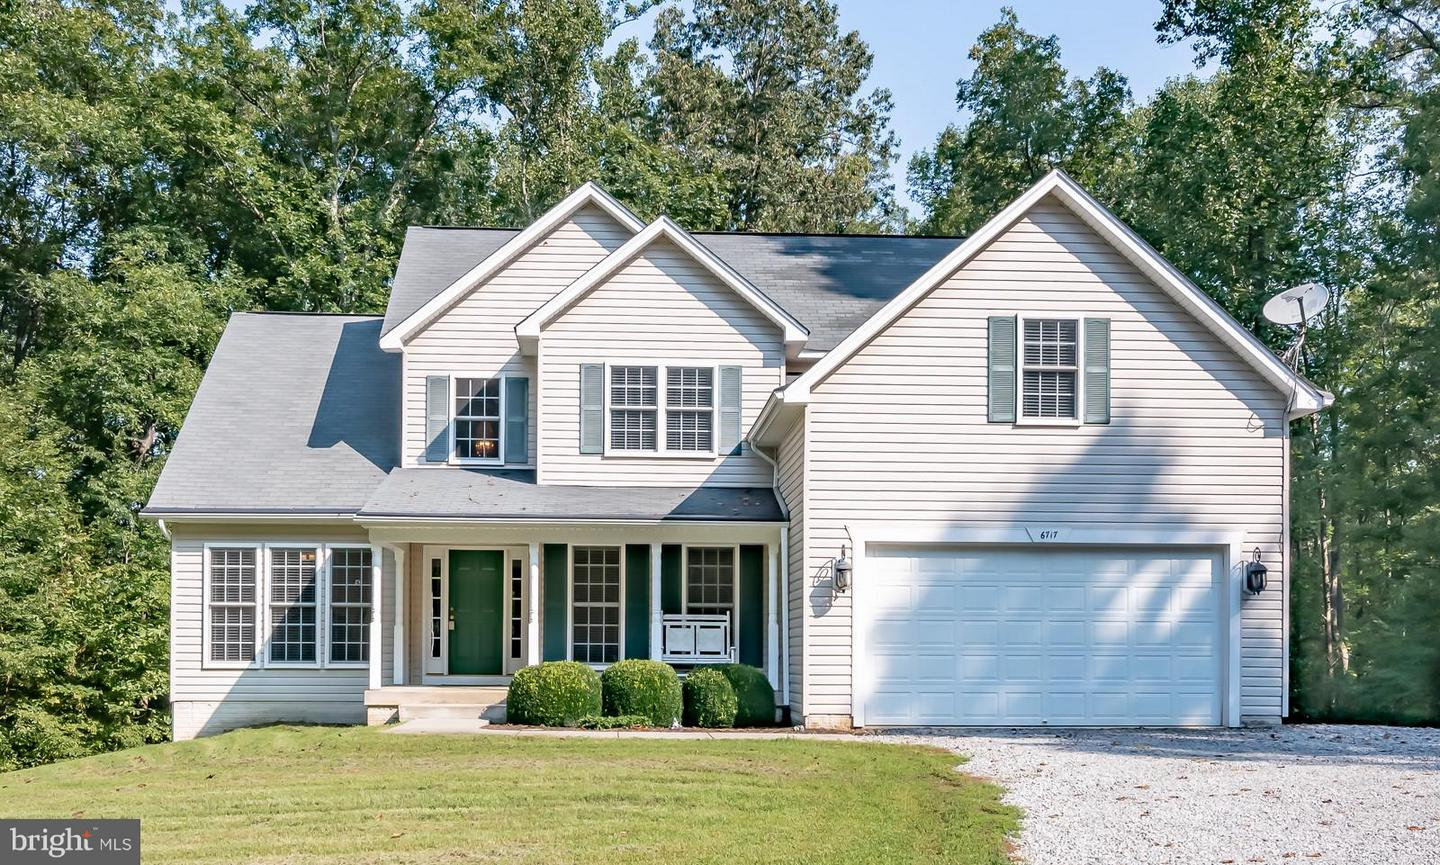 Single Family for Sale at 6717 Water View Ln Mineral, Virginia 23117 United States